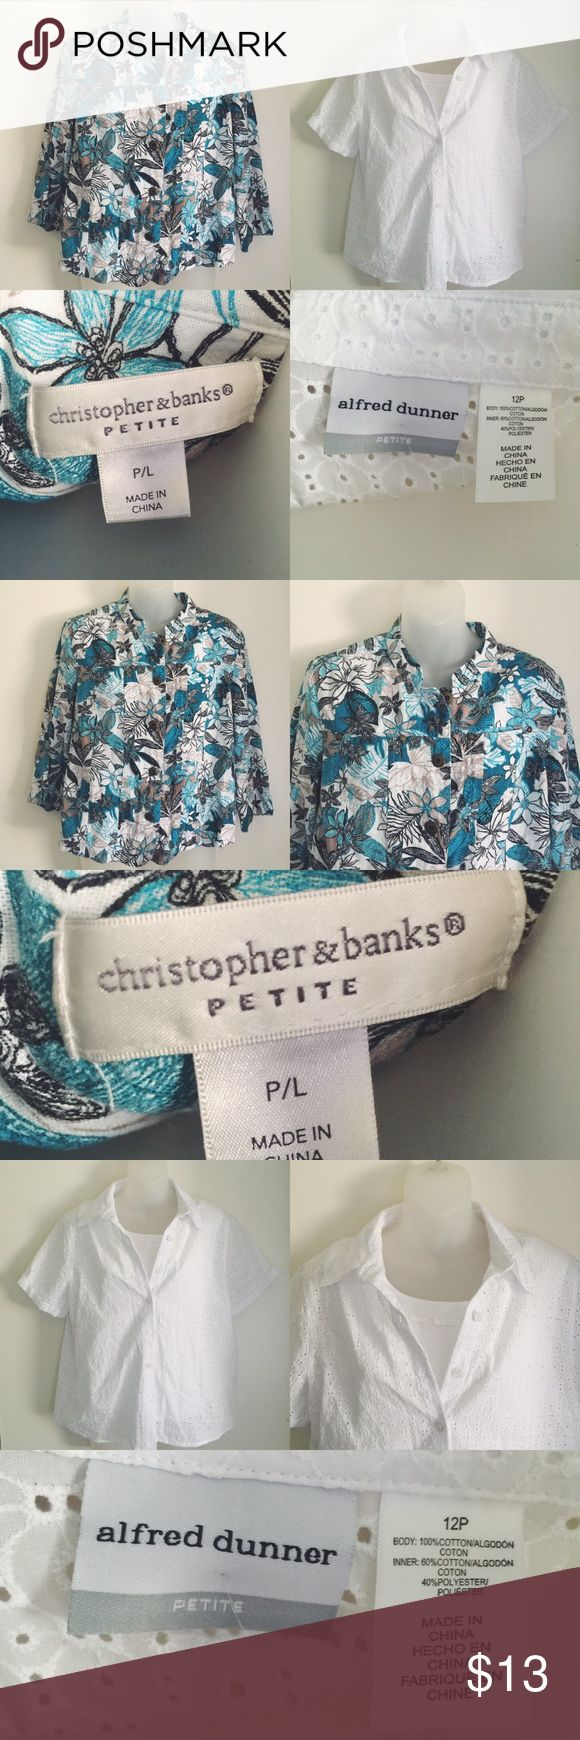 Lot of 2 Petite Women's Tops Up for sale in this listing are two Petite Women's tops.  -- Top # 1: Christopher & Banks ~ Linen Printed Top ~ Size Petite Large ~ $40 retail ~ 55% linen, 45% rayon   Top # 2: Alfred Dunner ~ Eyelet Top (tank included) ~ Size 12 Petite ~ $56 retail ~ Body: 100% cotton, Inner: 60% cotton, 40% polyester  : Same-day shipping before 5pm CST. : Bundle & save! : Reasonable offers welcome. (Please remember Posh takes 20% of sales.) : Pet/smoke free home. : No trades or…